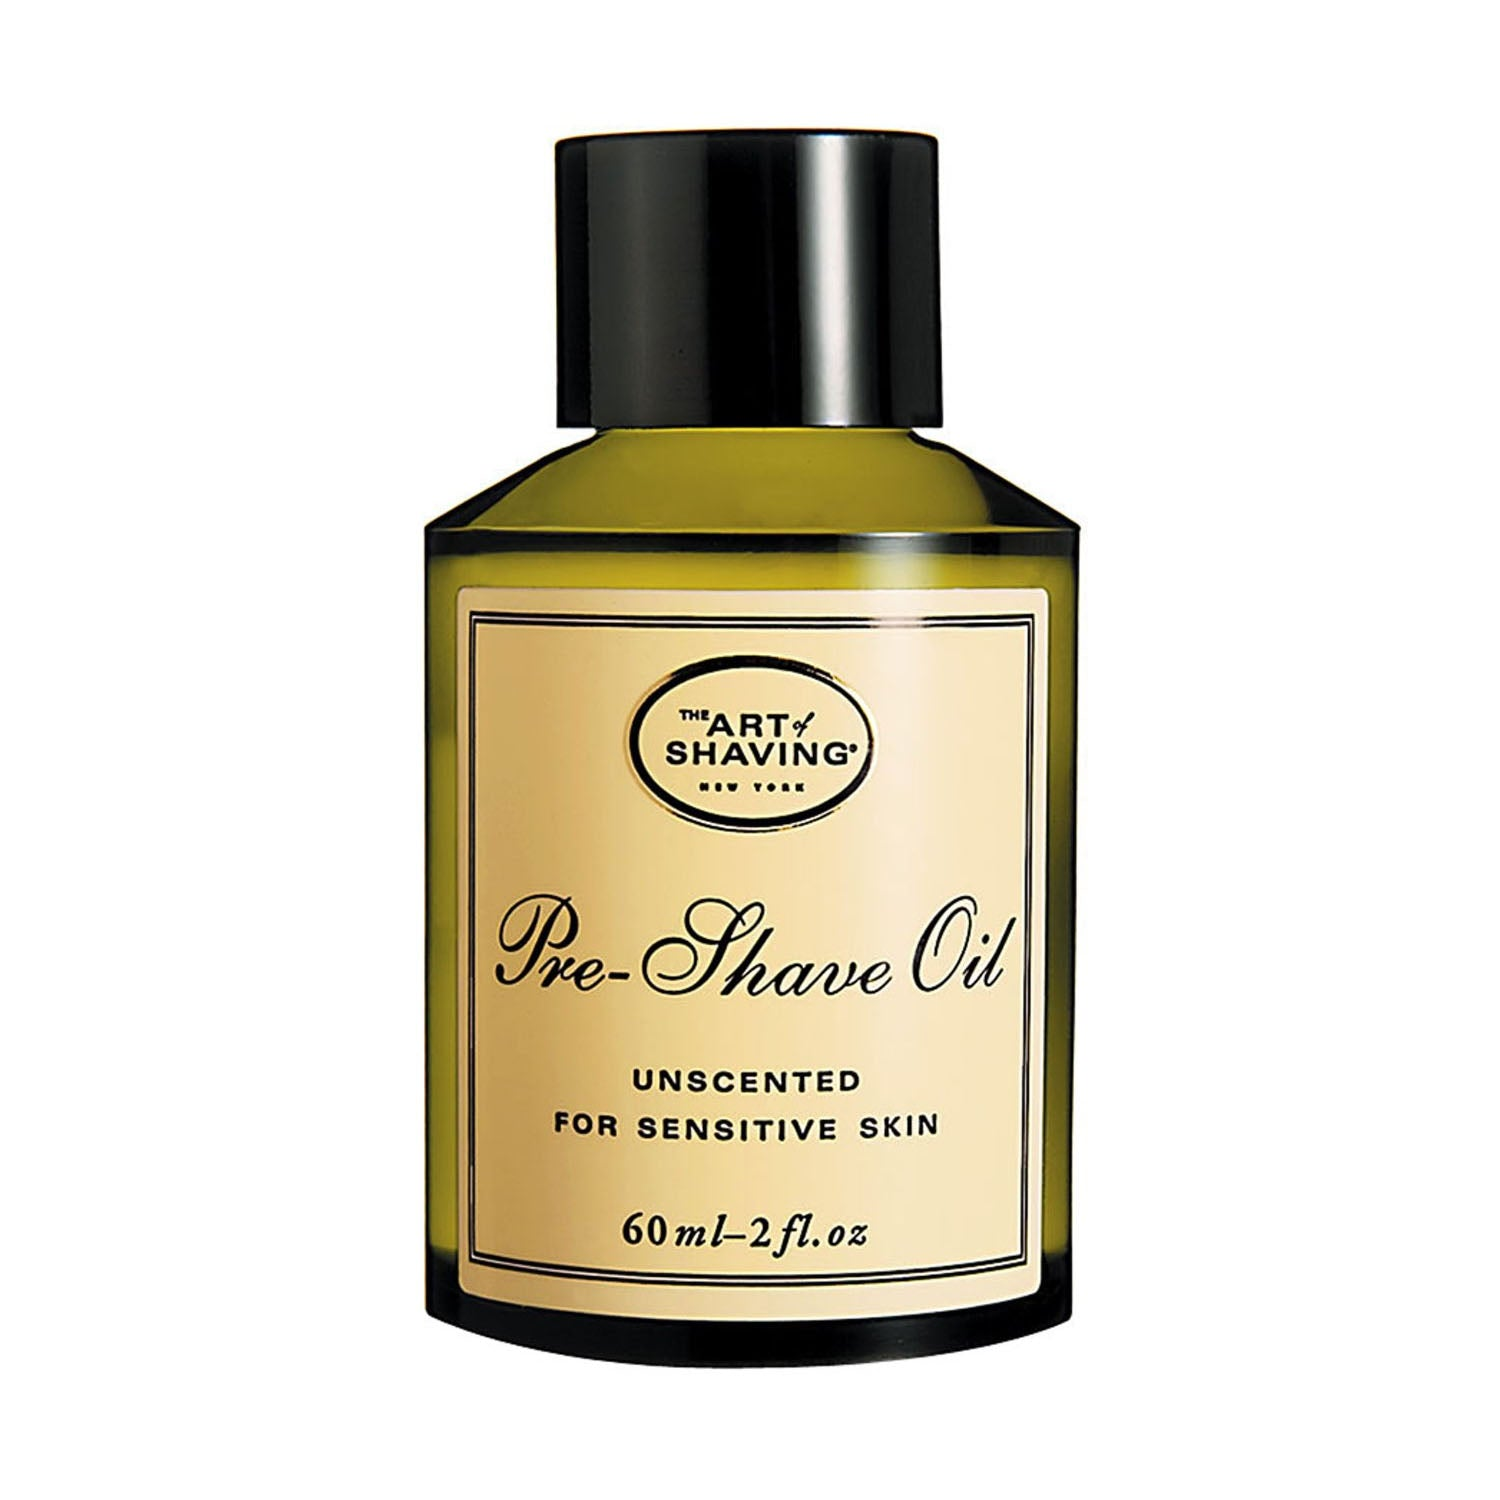 The Art of Shaving Pre-Shave Oil - Unscented 2 oz